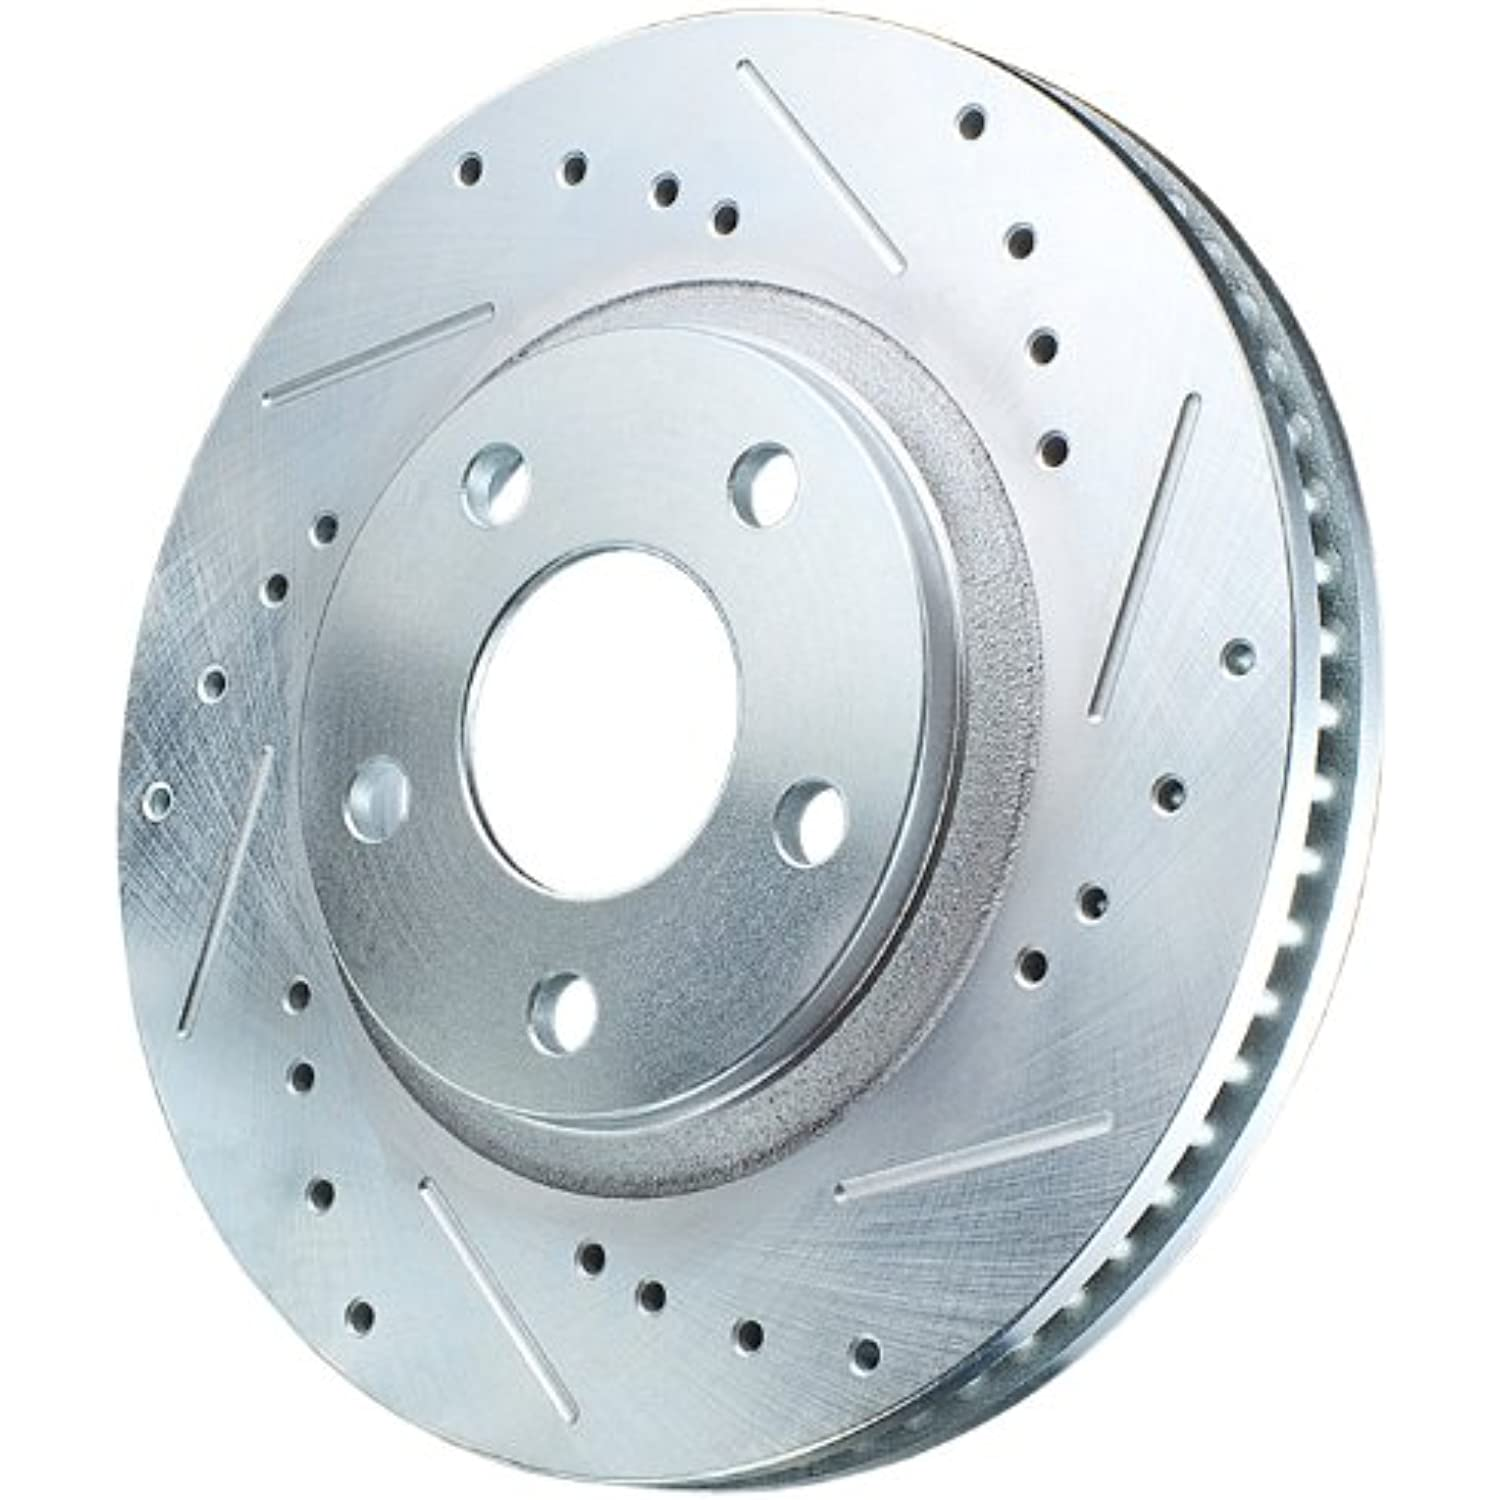 Power Stop JBR1171XR Power Stop Extreme Performance Drilled And Slotted Brake Rotors Front Right Power Stop Extreme Performance Drilled And Slotted Brake Rotors